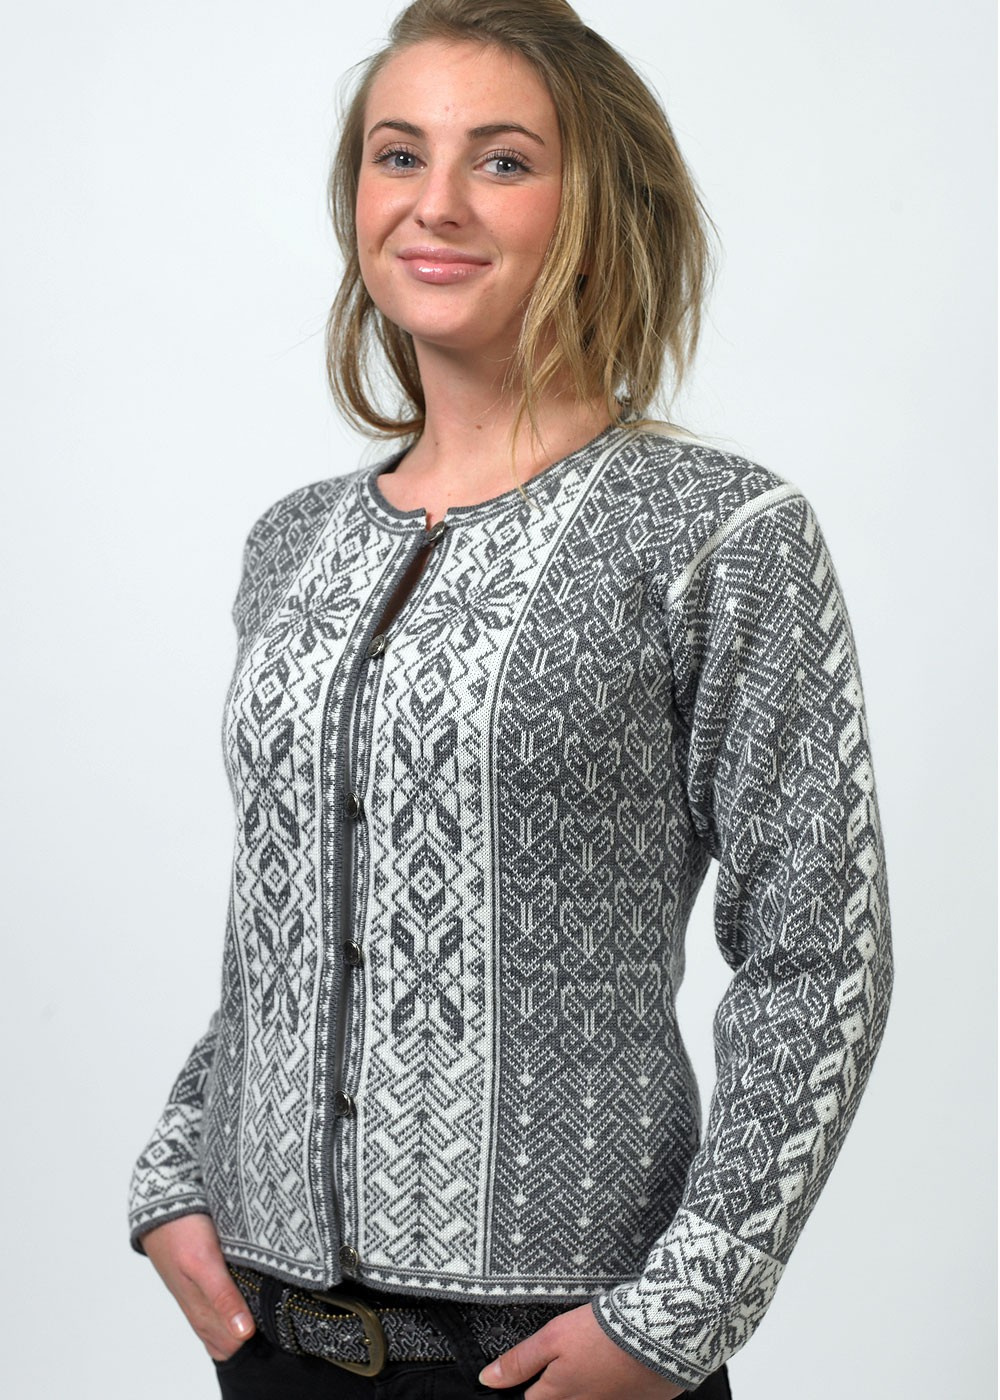 Sweater Chalet is pleased to display the Norlender Norwegian Wool Women's Pullover Sweaters and Norlender Norwegian Wool Women's Cardigan Sweaters. Sweater Chalet. Find us on Facebook Tell us about your snow-inspiration and we'll share your site on our Featured Links page! Shop Online. Men's Sweaters. Women's Sweaters.